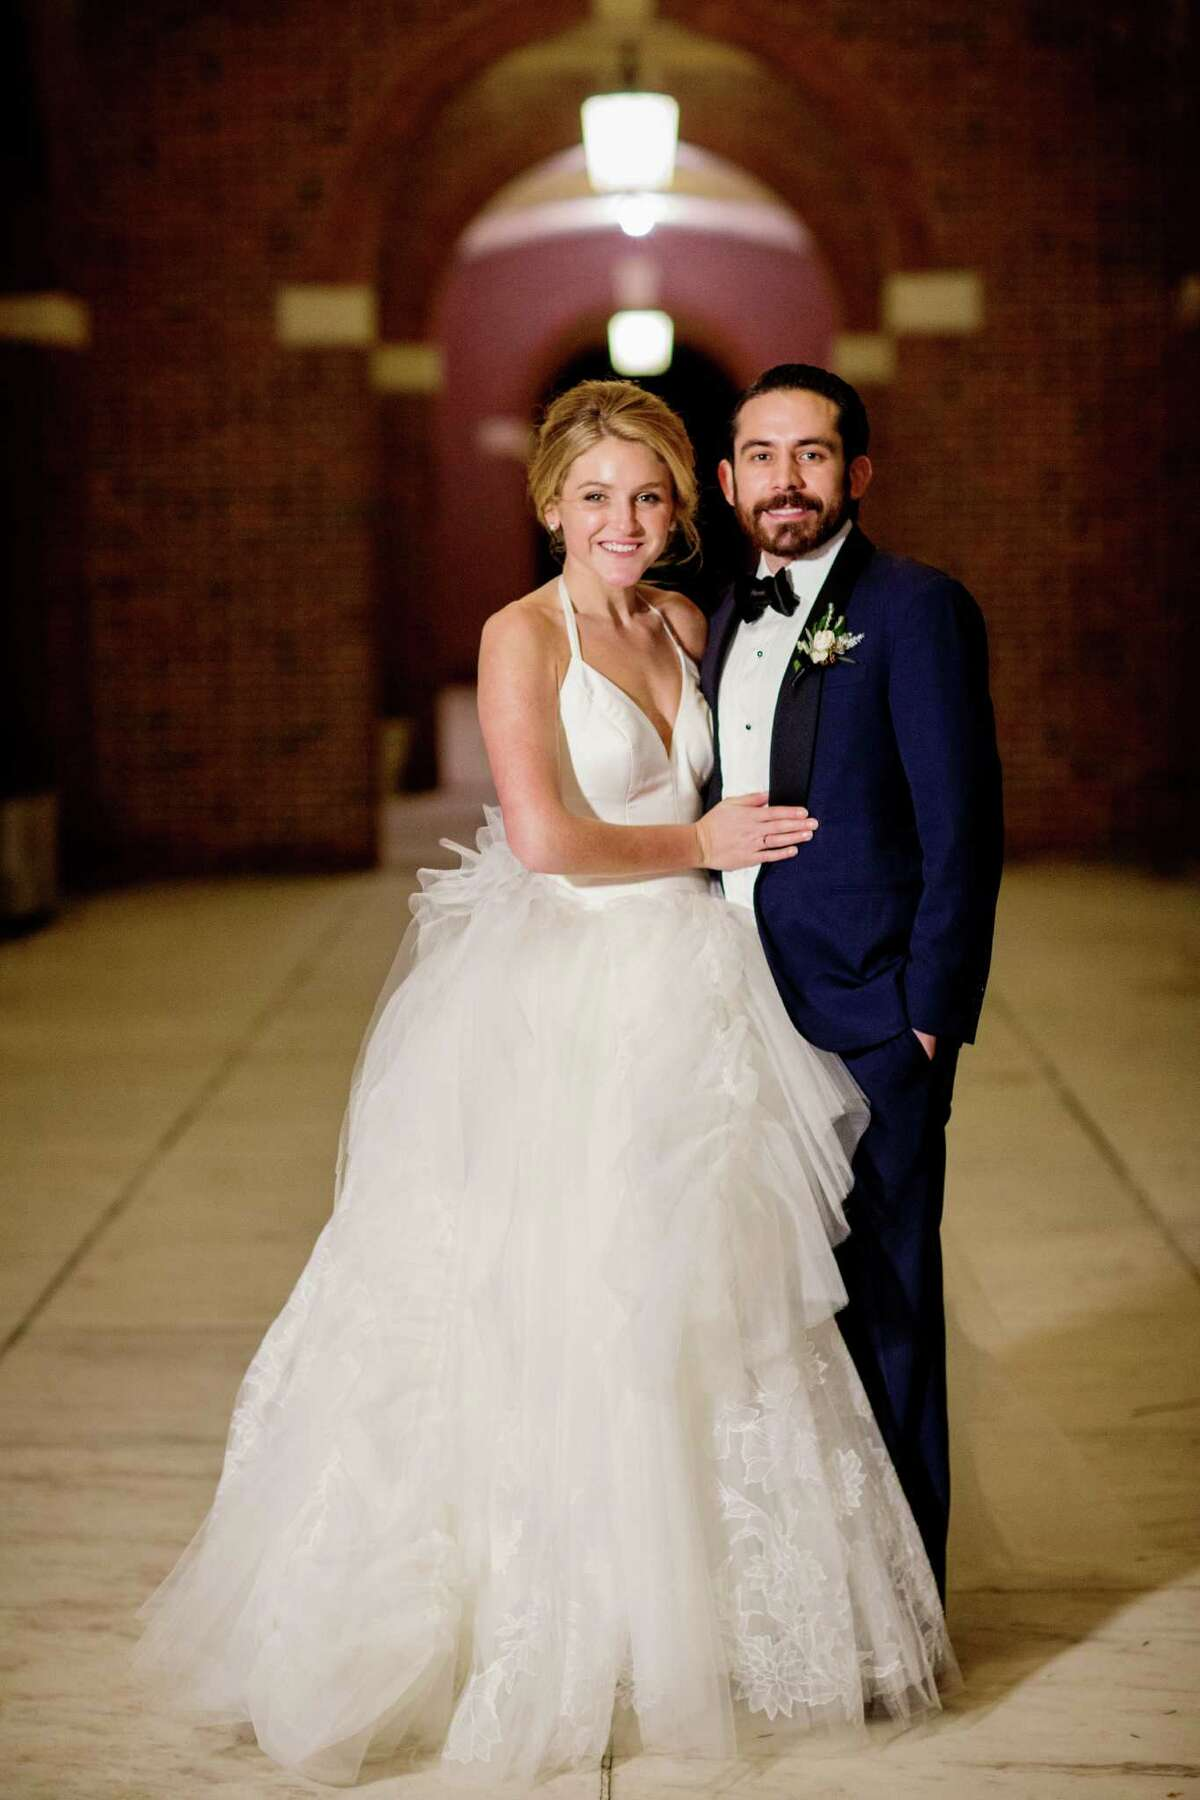 Brittany and Andrew Green pose, at the Hall of Springs in Saratoga Springs, during their January 16, 2016 nuptials. (Tracey Buyce Photography)